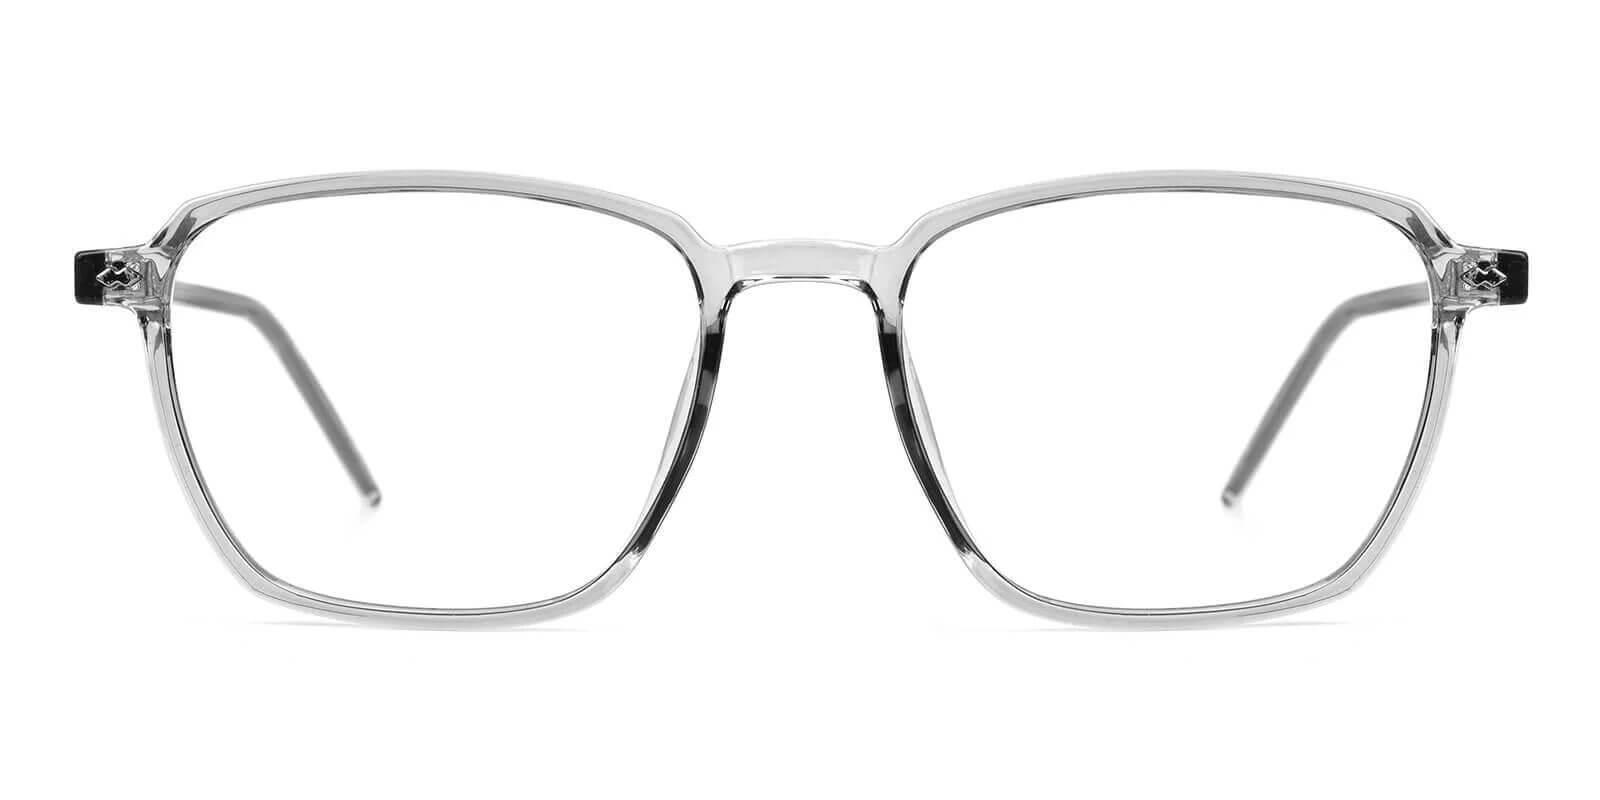 Flume Gray TR Eyeglasses , SpringHinges , UniversalBridgeFit Frames from ABBE Glasses